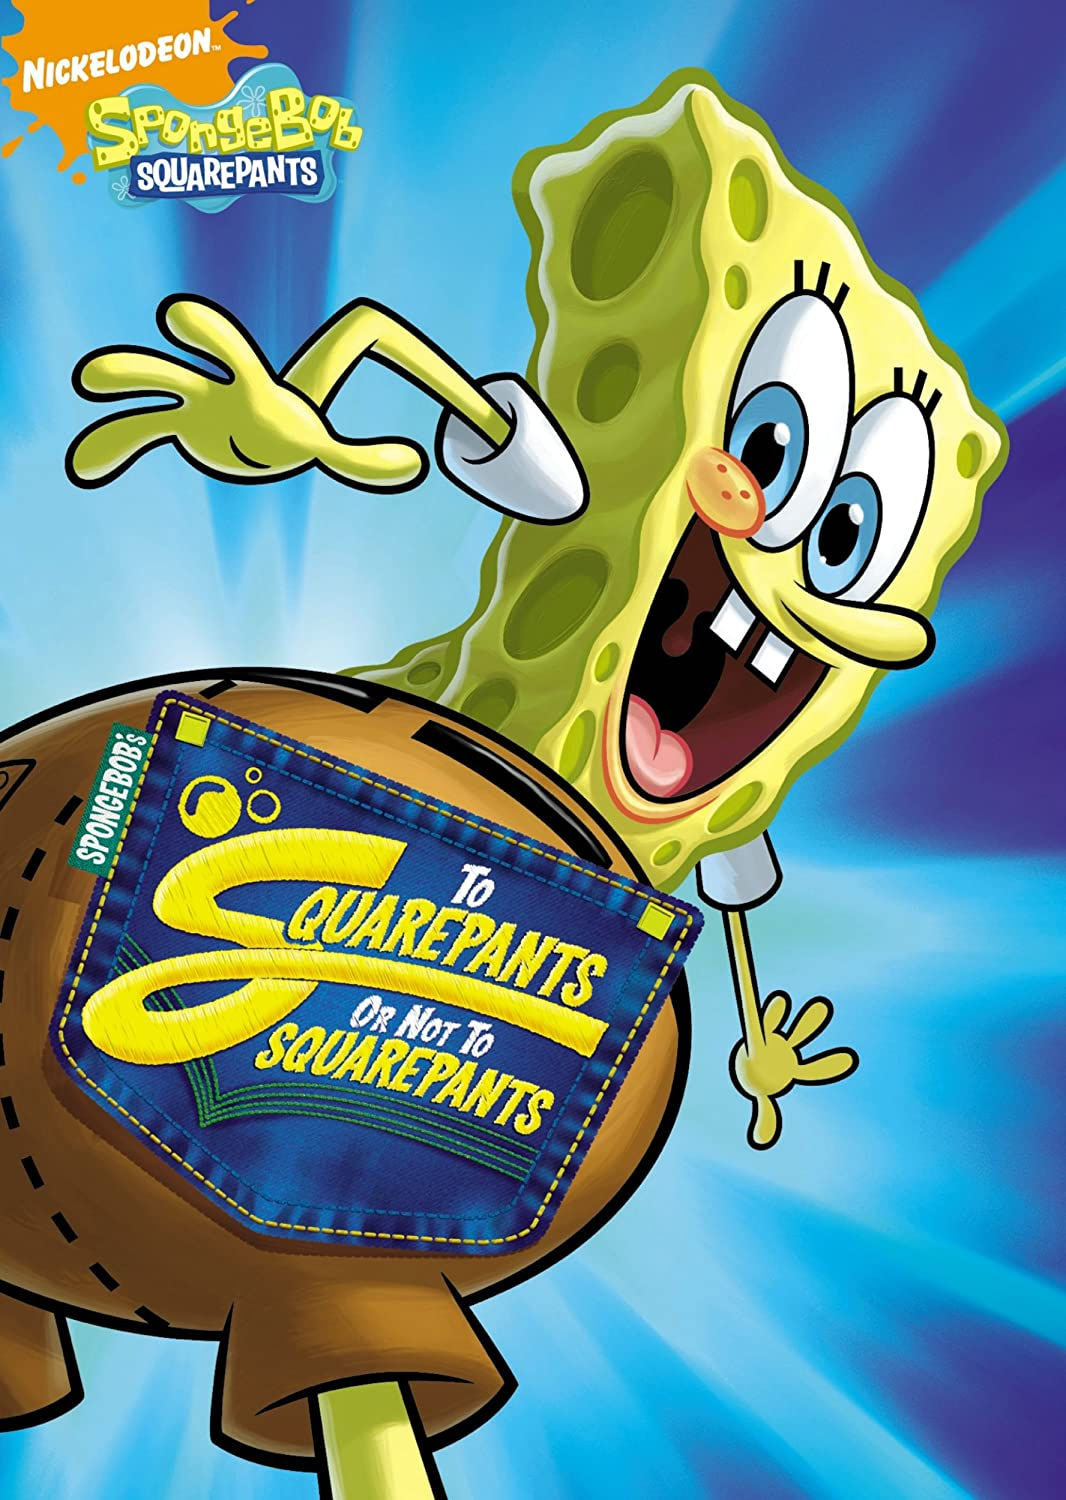 amazon com spongebob squarepants to squarepants or not to